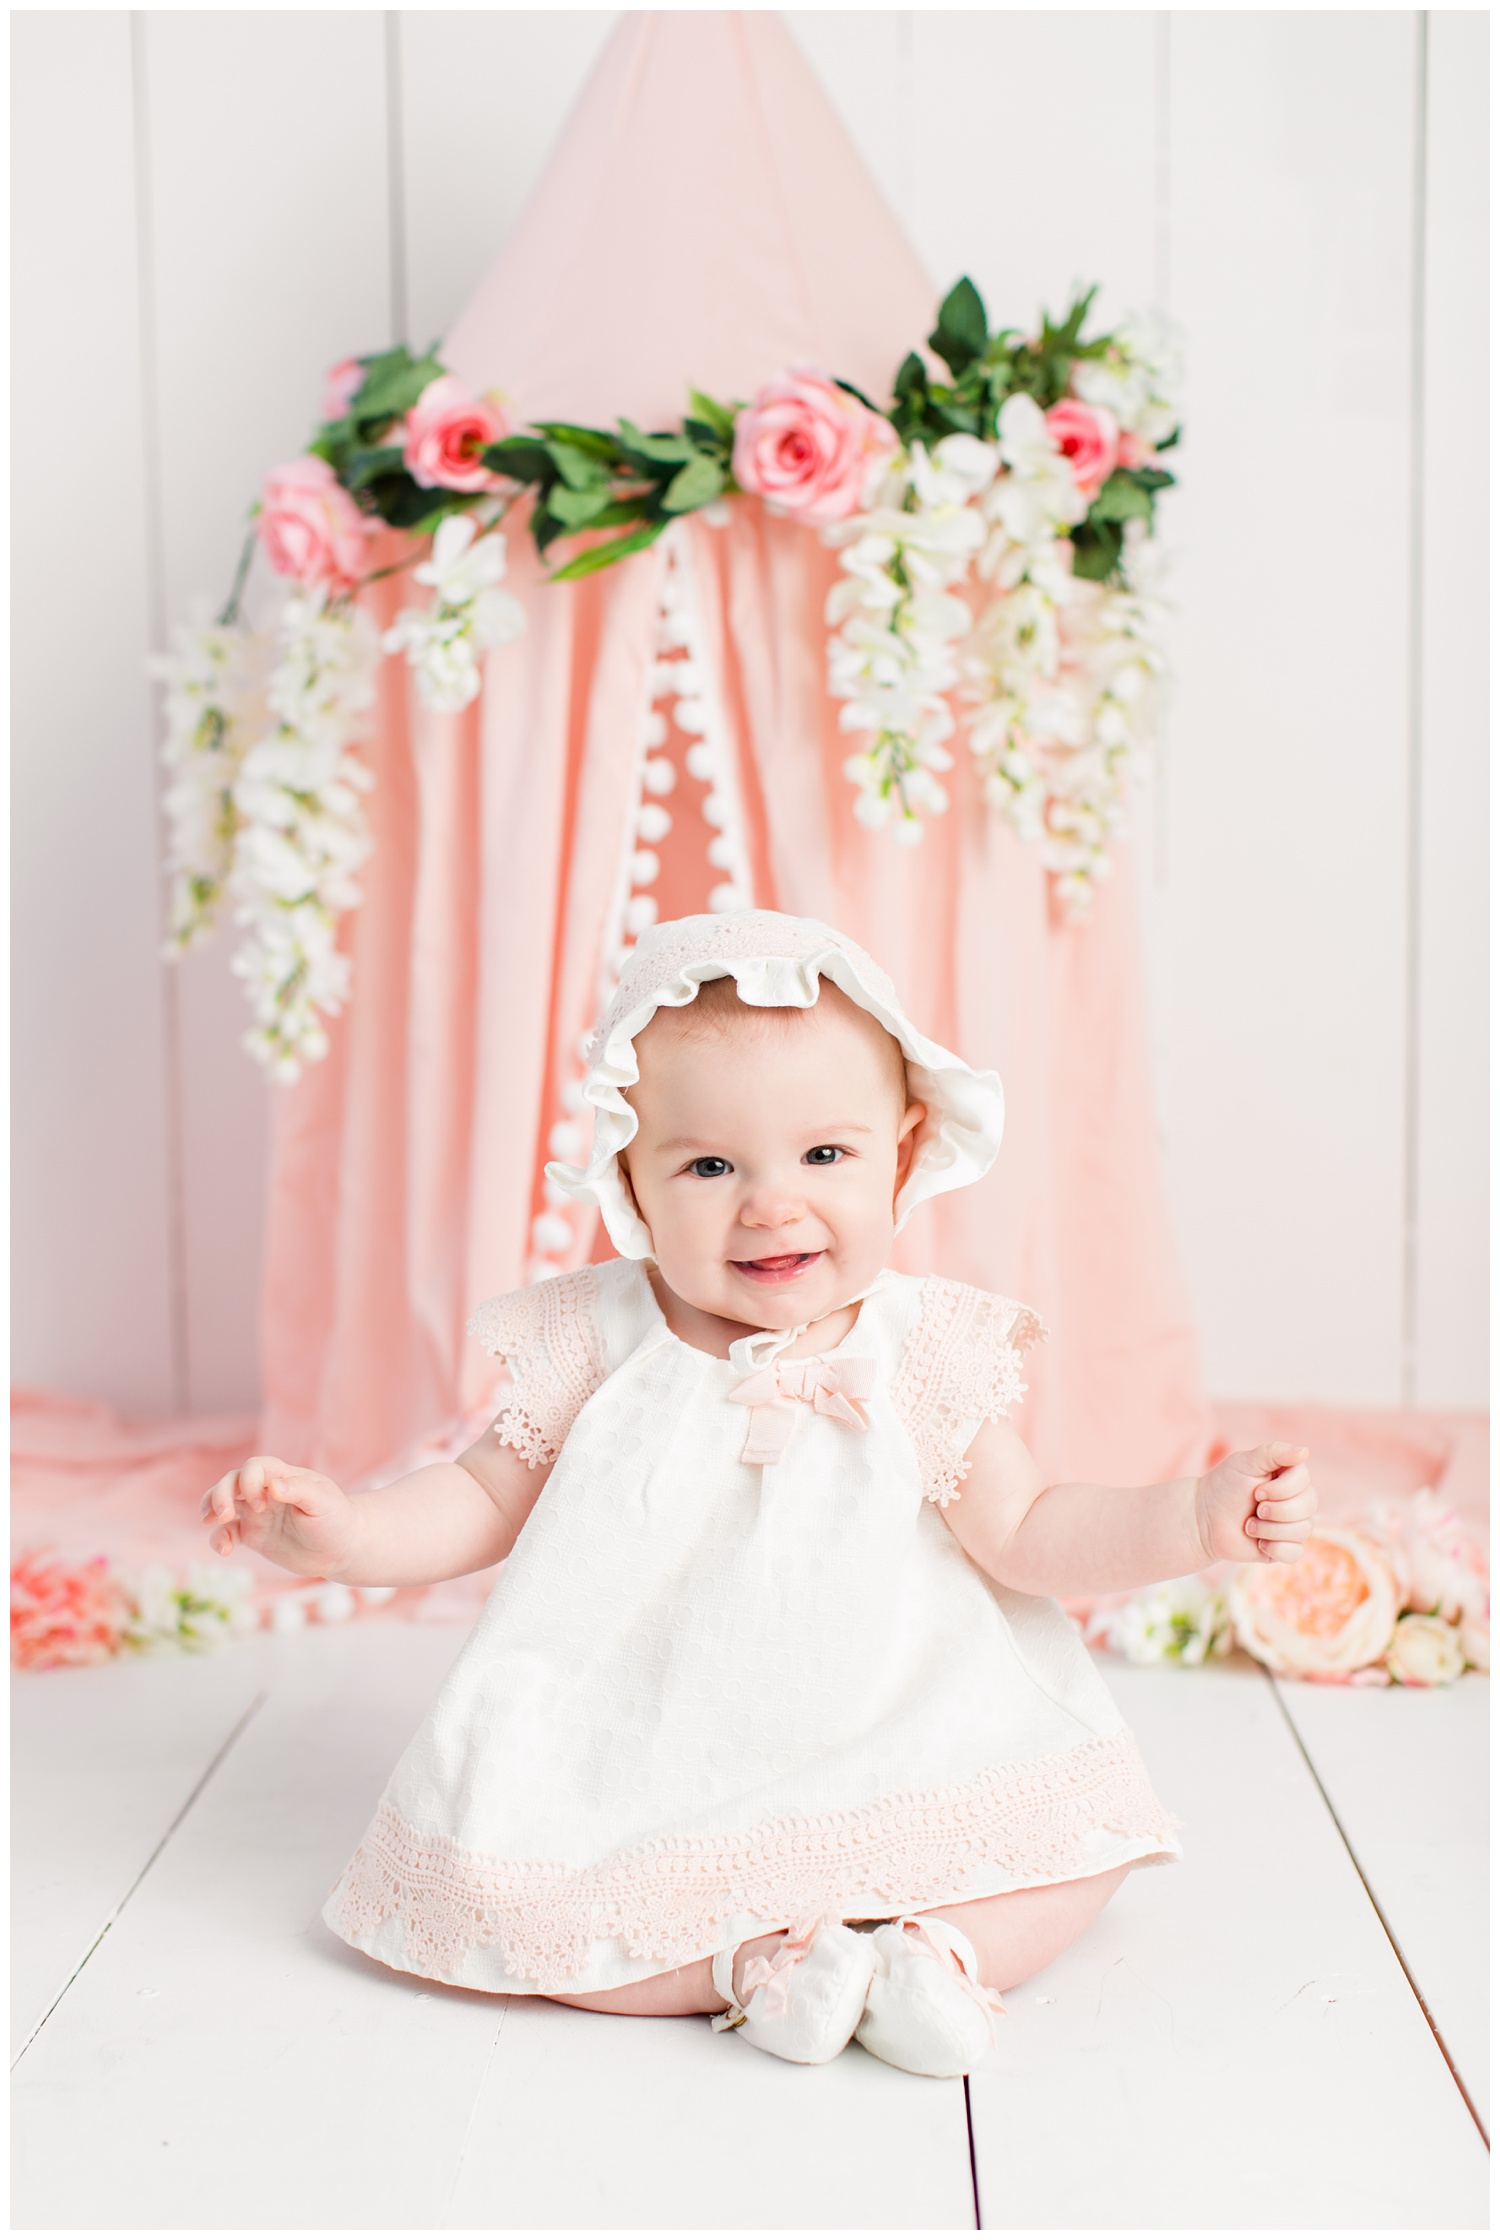 Baby Nora poses in a cream and pink babydoll dress and bonnet from TJ Maxx in front of a pink bed canopy decorated in florals.